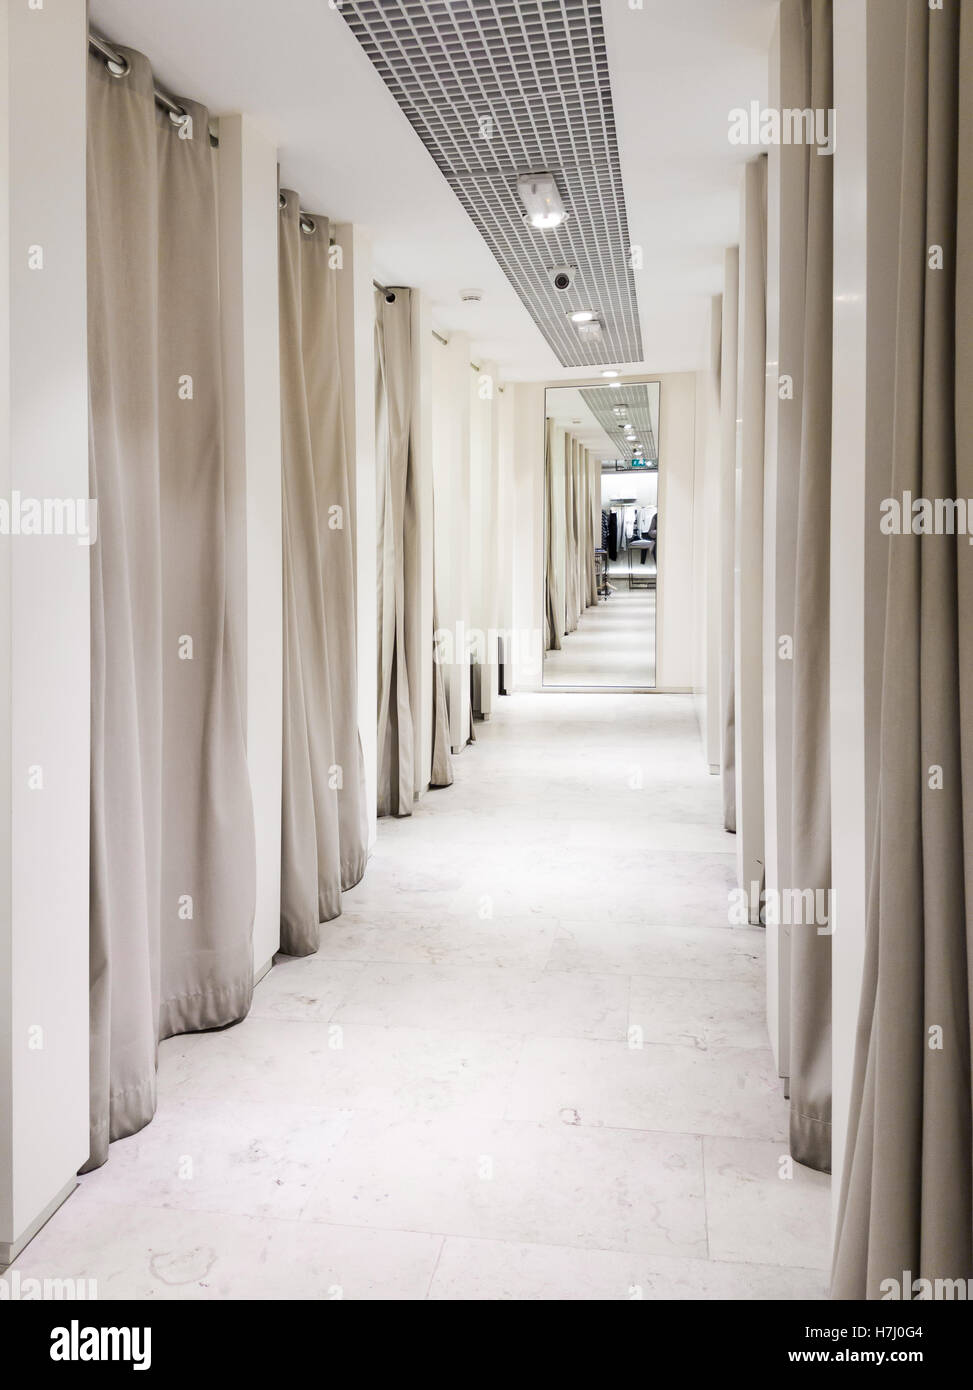 Fitting room interior in a mall - Stock Image